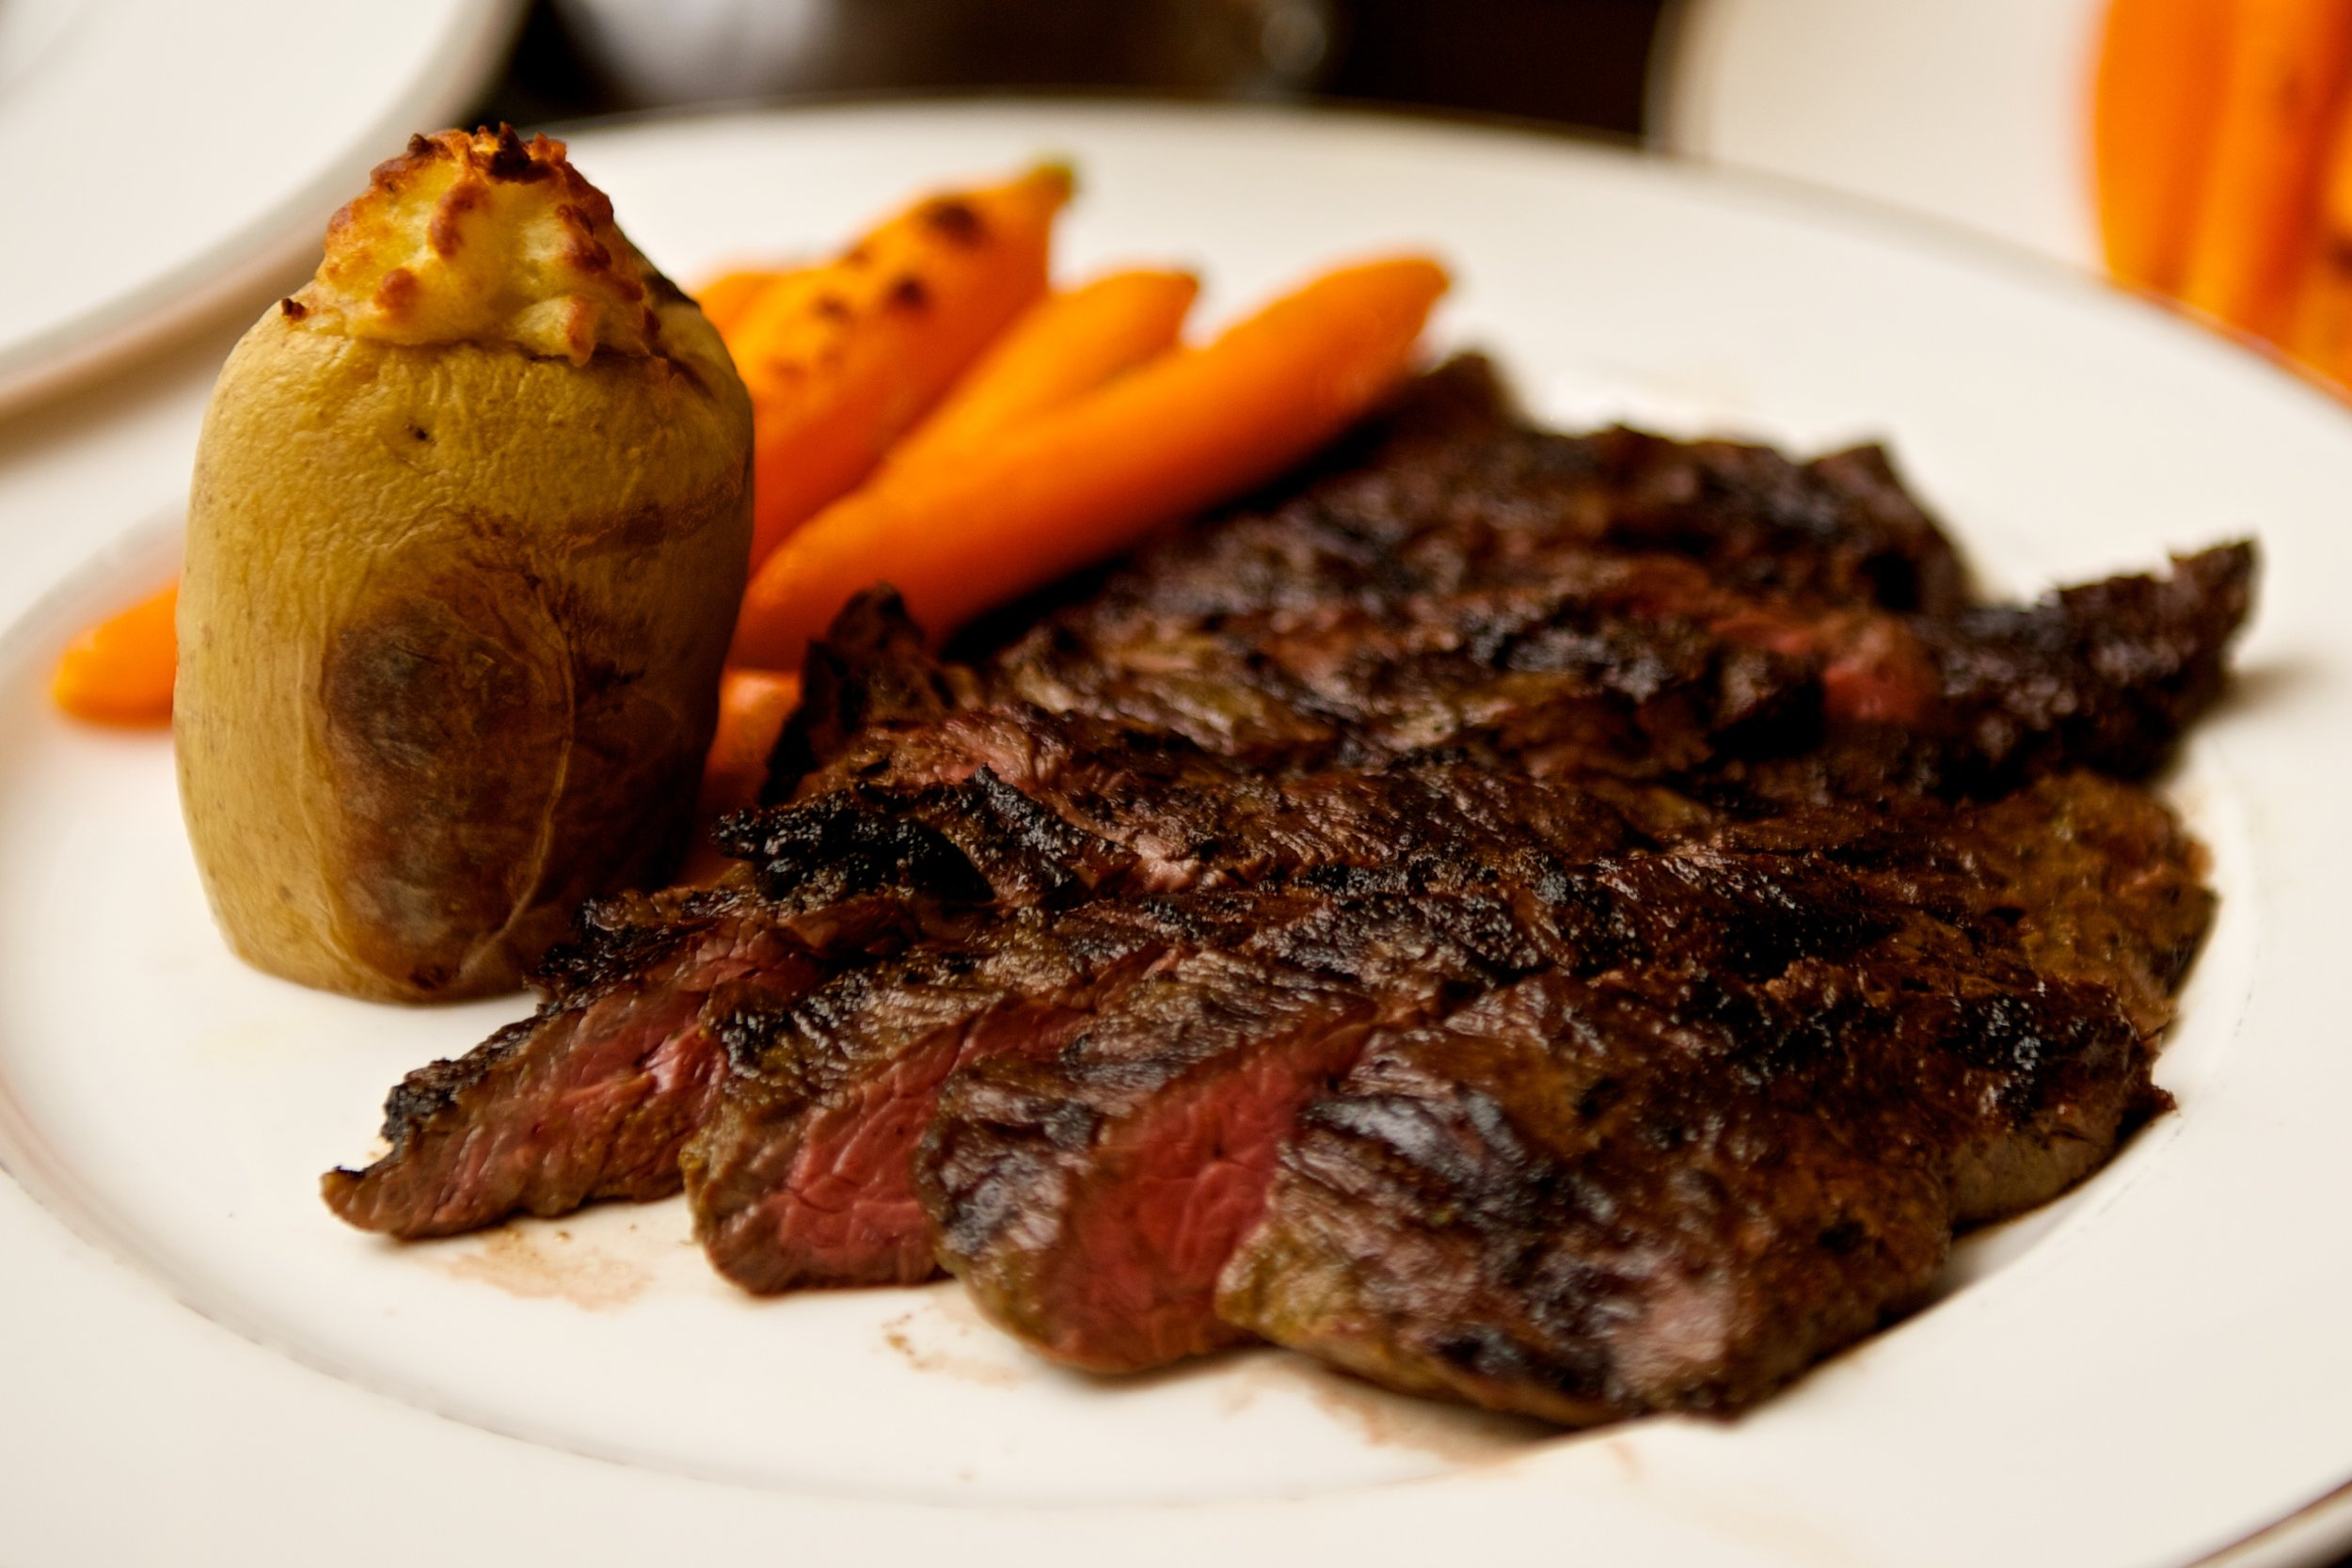 wedding-food-steak-potato-julia-kramer.jpg